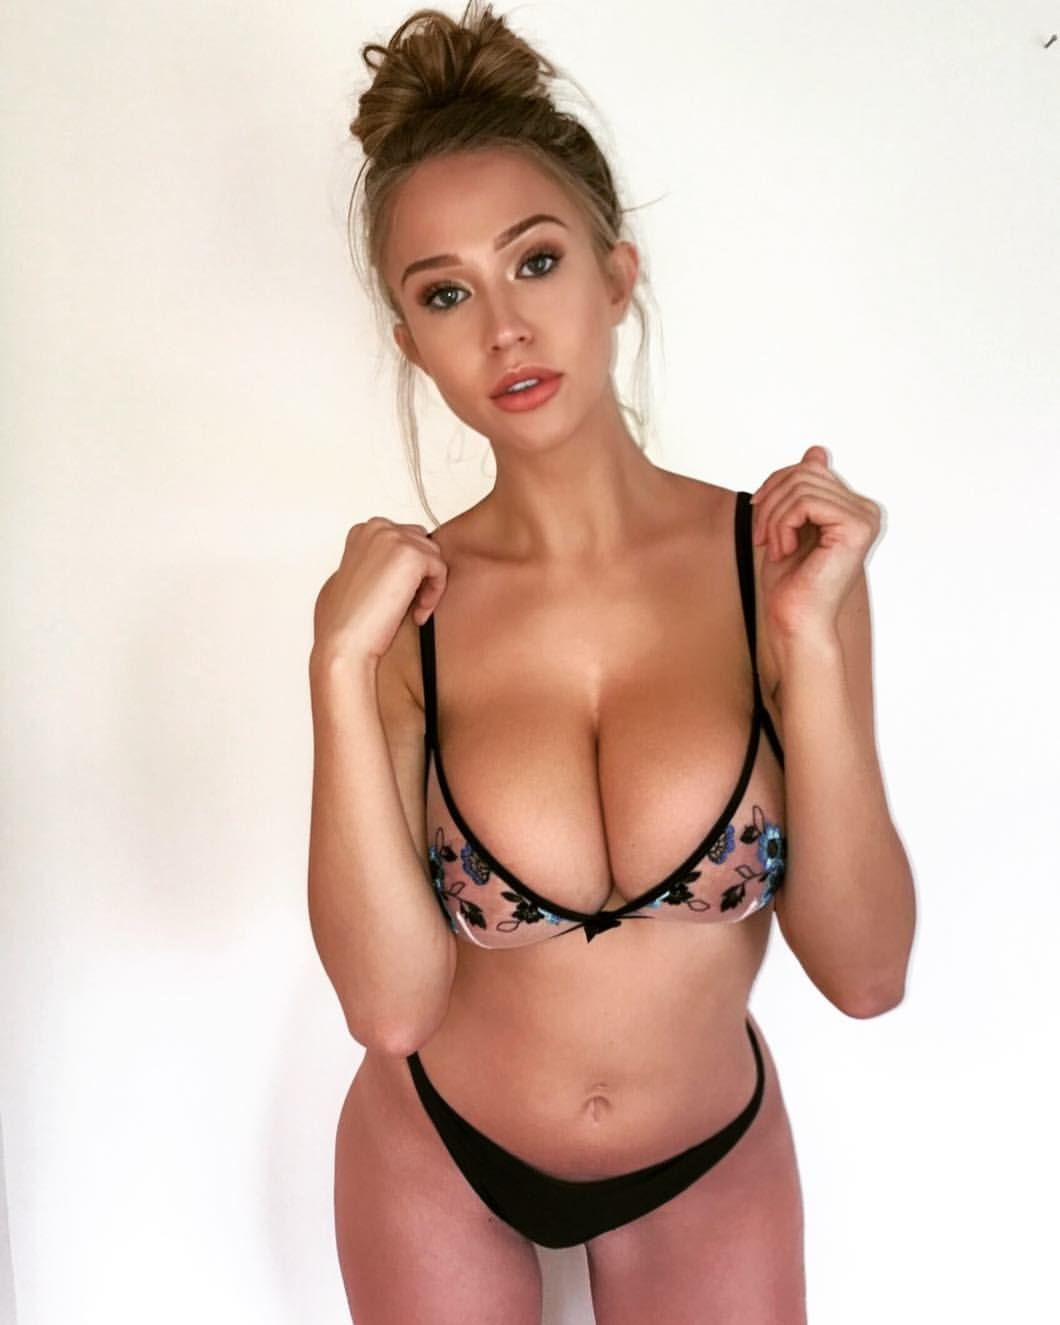 Sophie Reade Boob Size Great 1,791 likes, 37 comments - sophie reade (@sophiereadeofficial) on